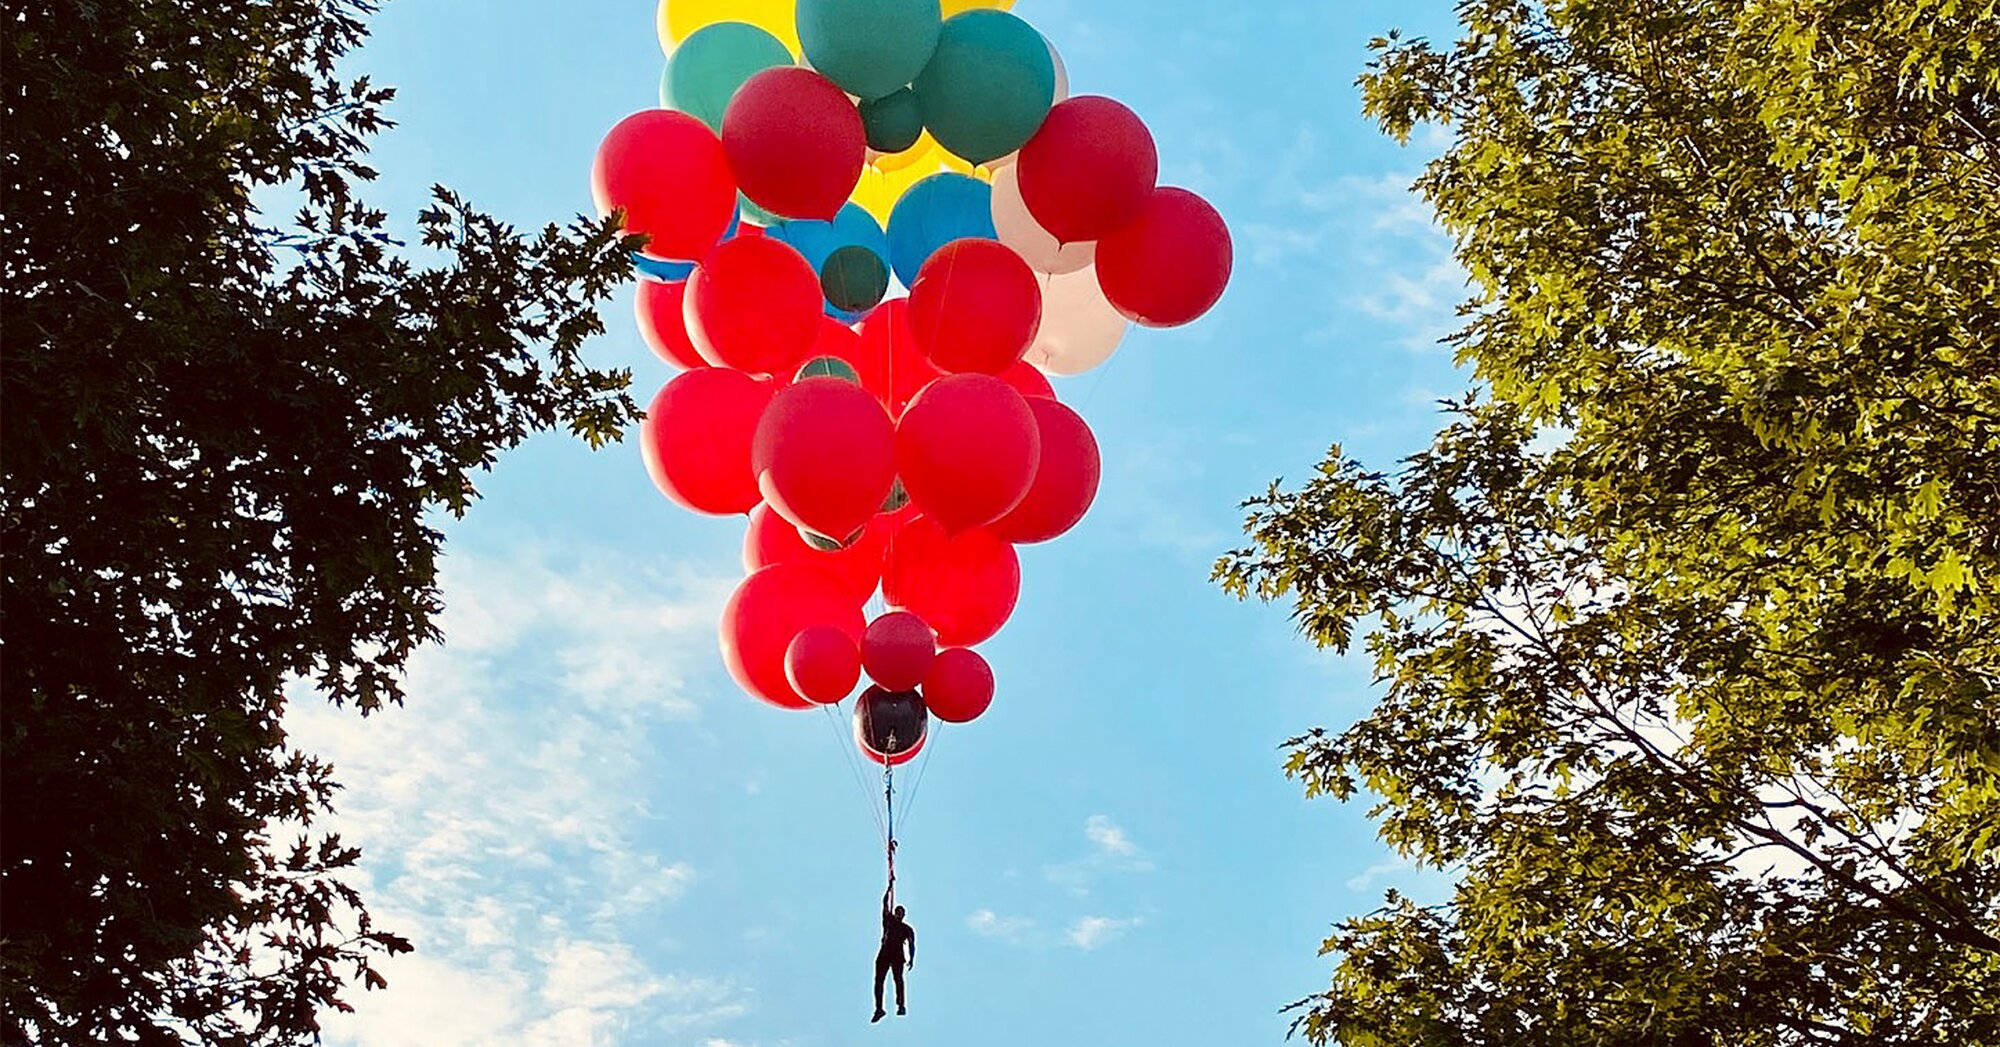 American Magician And Daredevil David Blaine Soars Into the Skies Using Helium Balloons